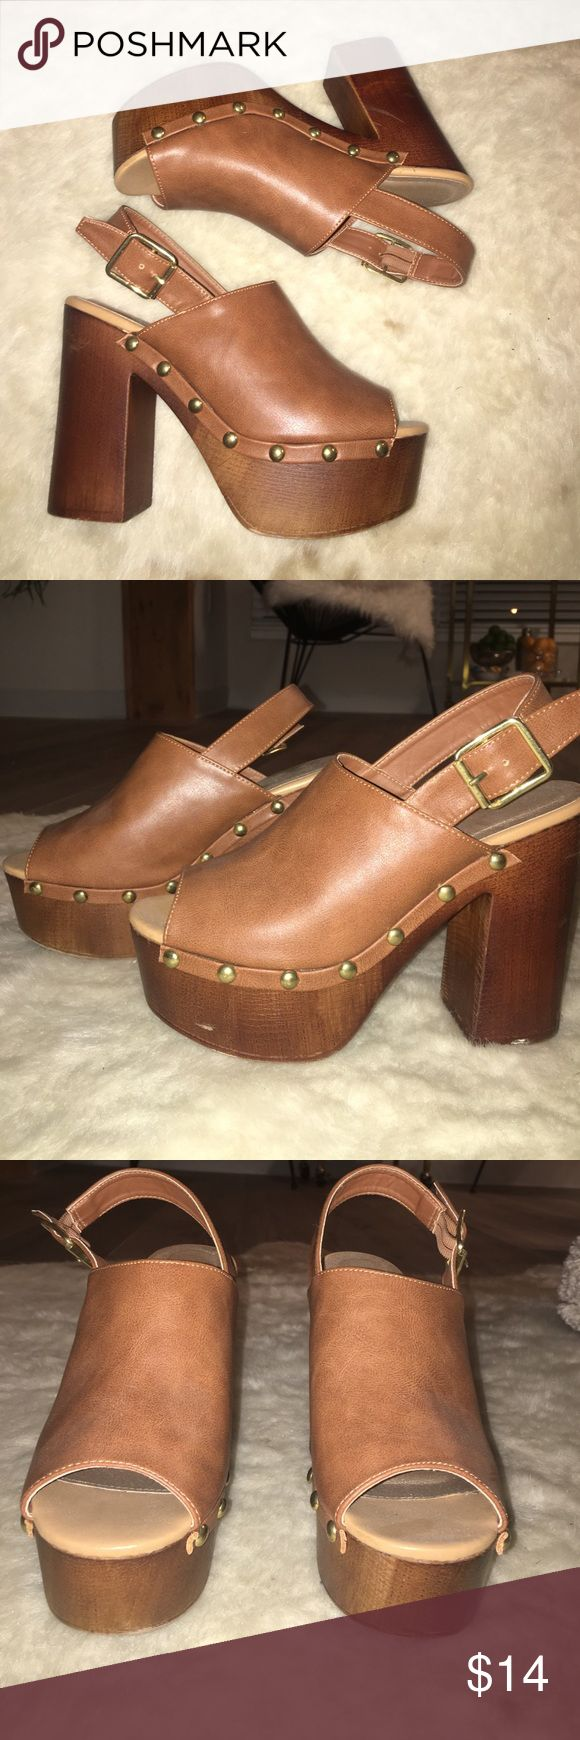 Boho style mule clogs Cognac brown, gold studs, 4.5 in heel, 1.5 in platform. Super sassy with white peasant too and jeans! Charlotte Russe Shoes Mules & Clogs